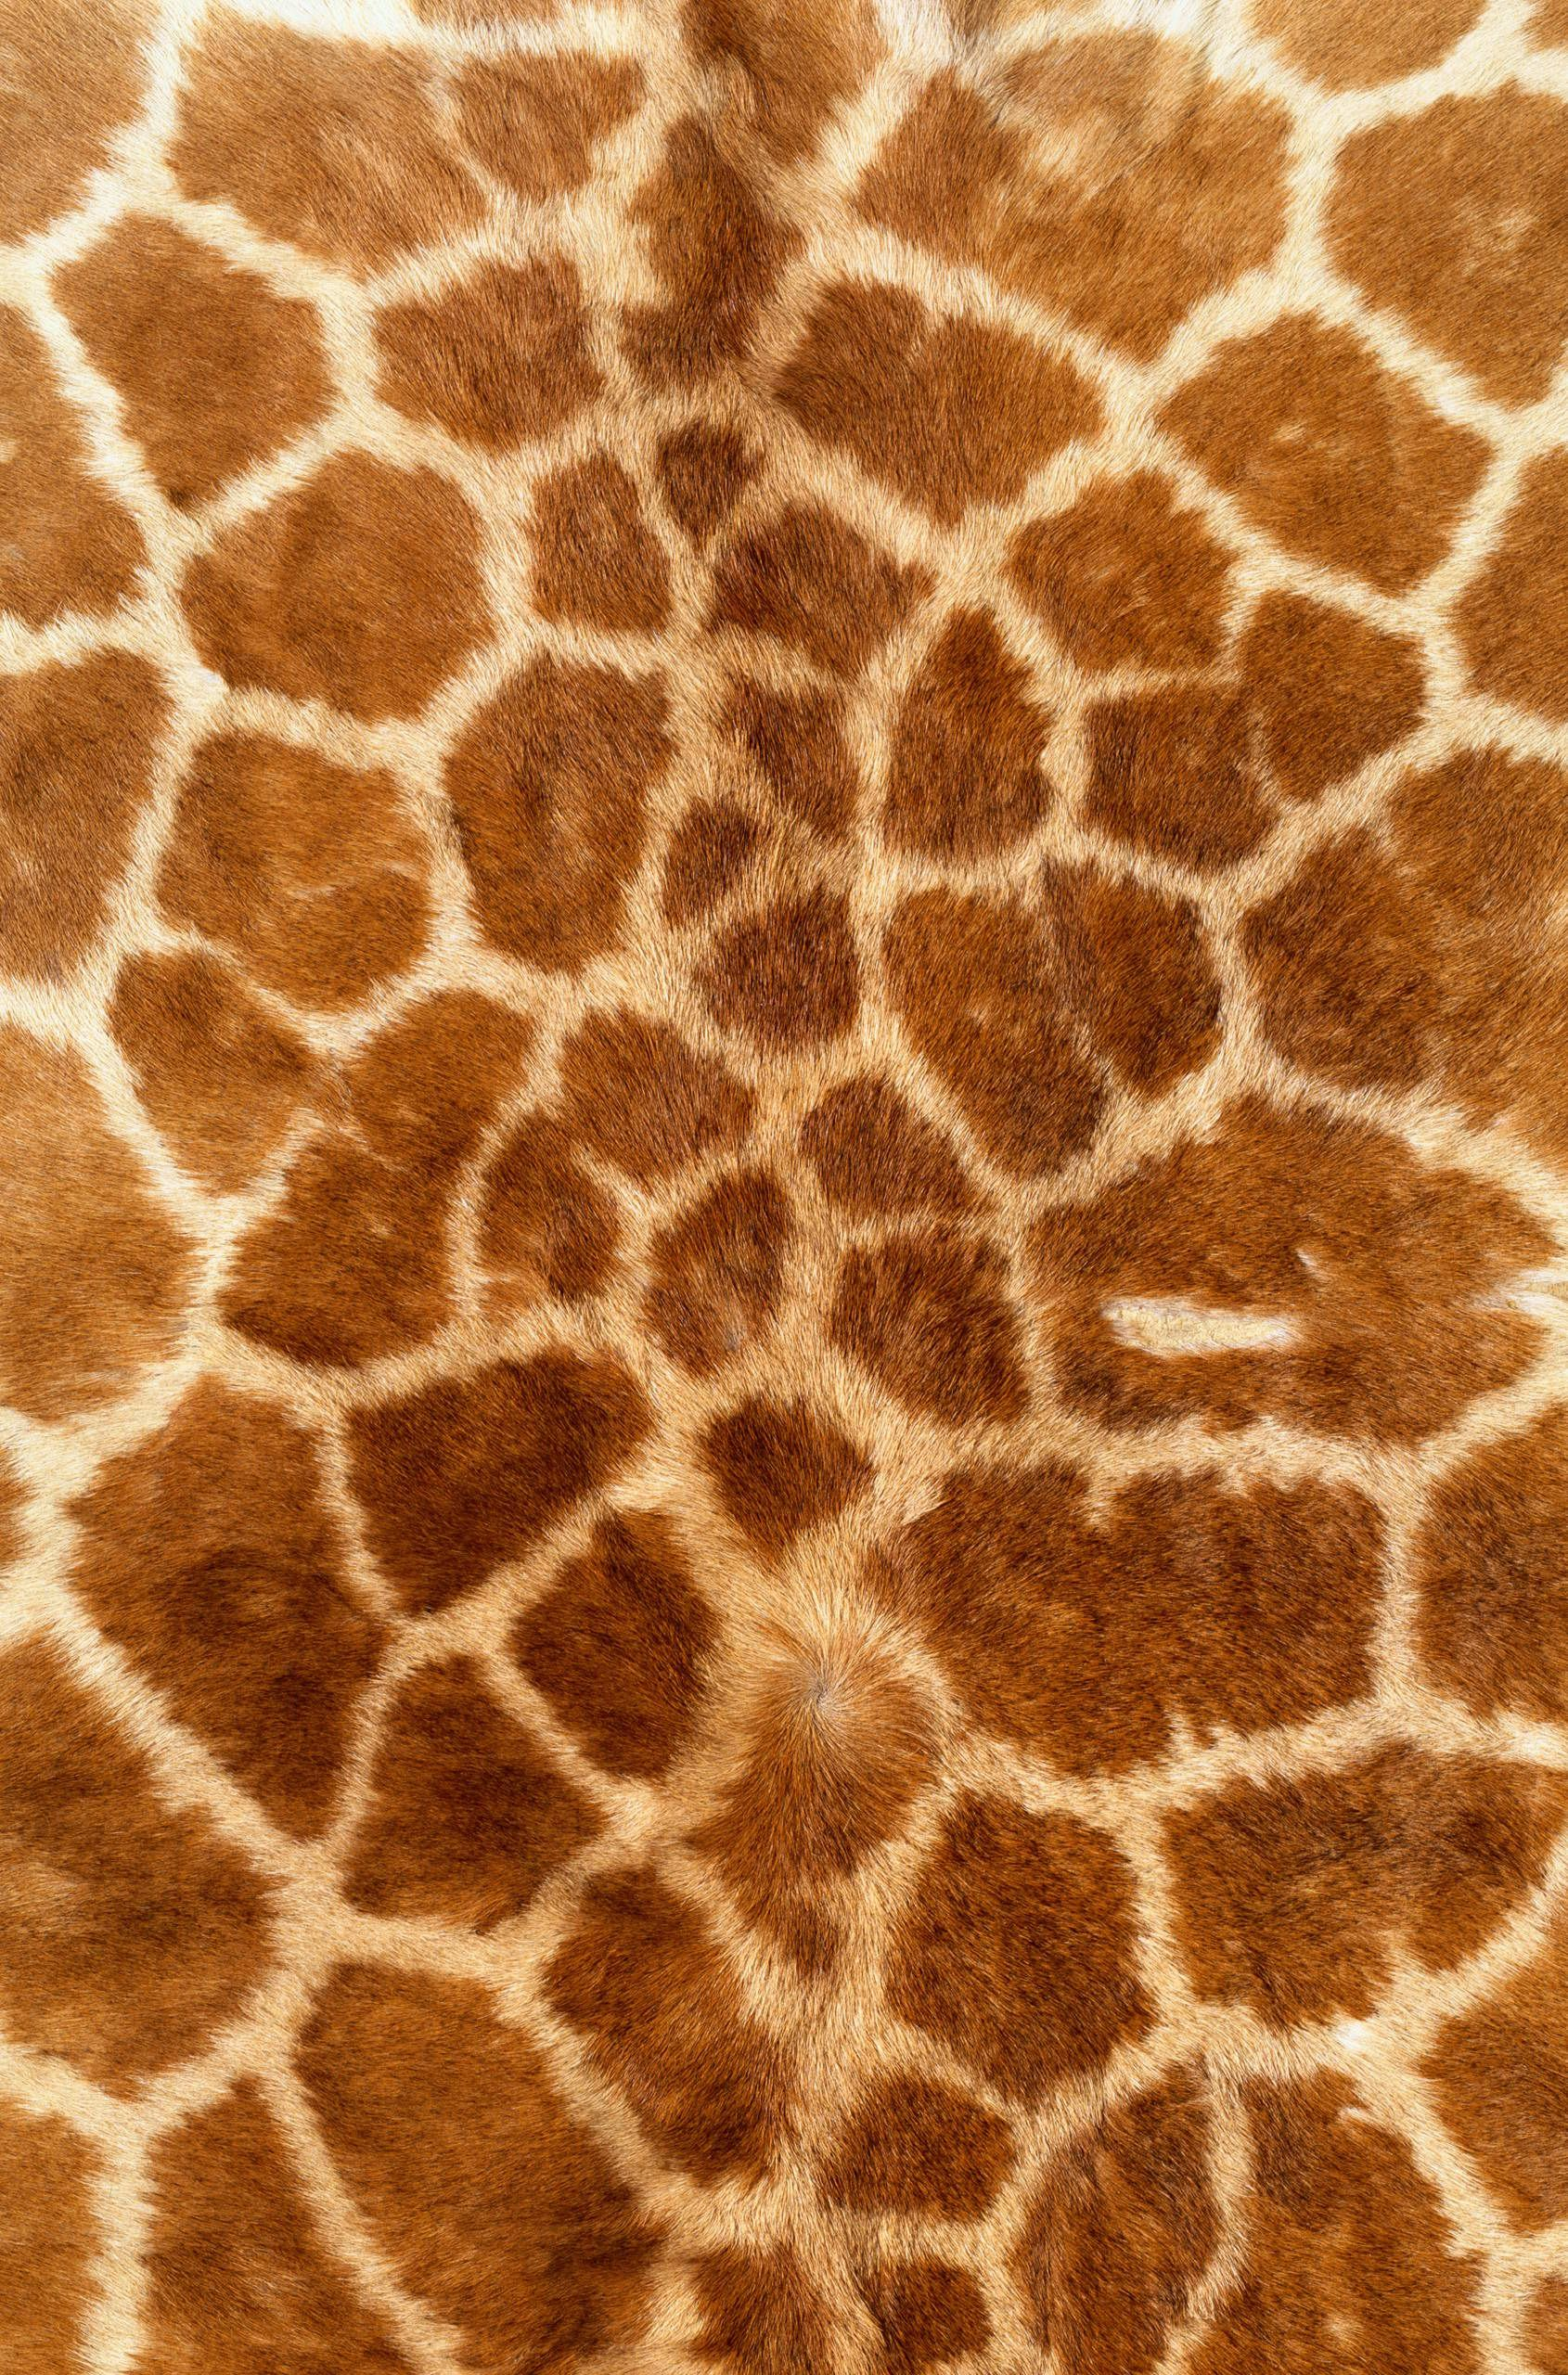 Animal Print Iphone 5 Wallpaper мех Skin Giraffe Texture Fur Fur Texture Background